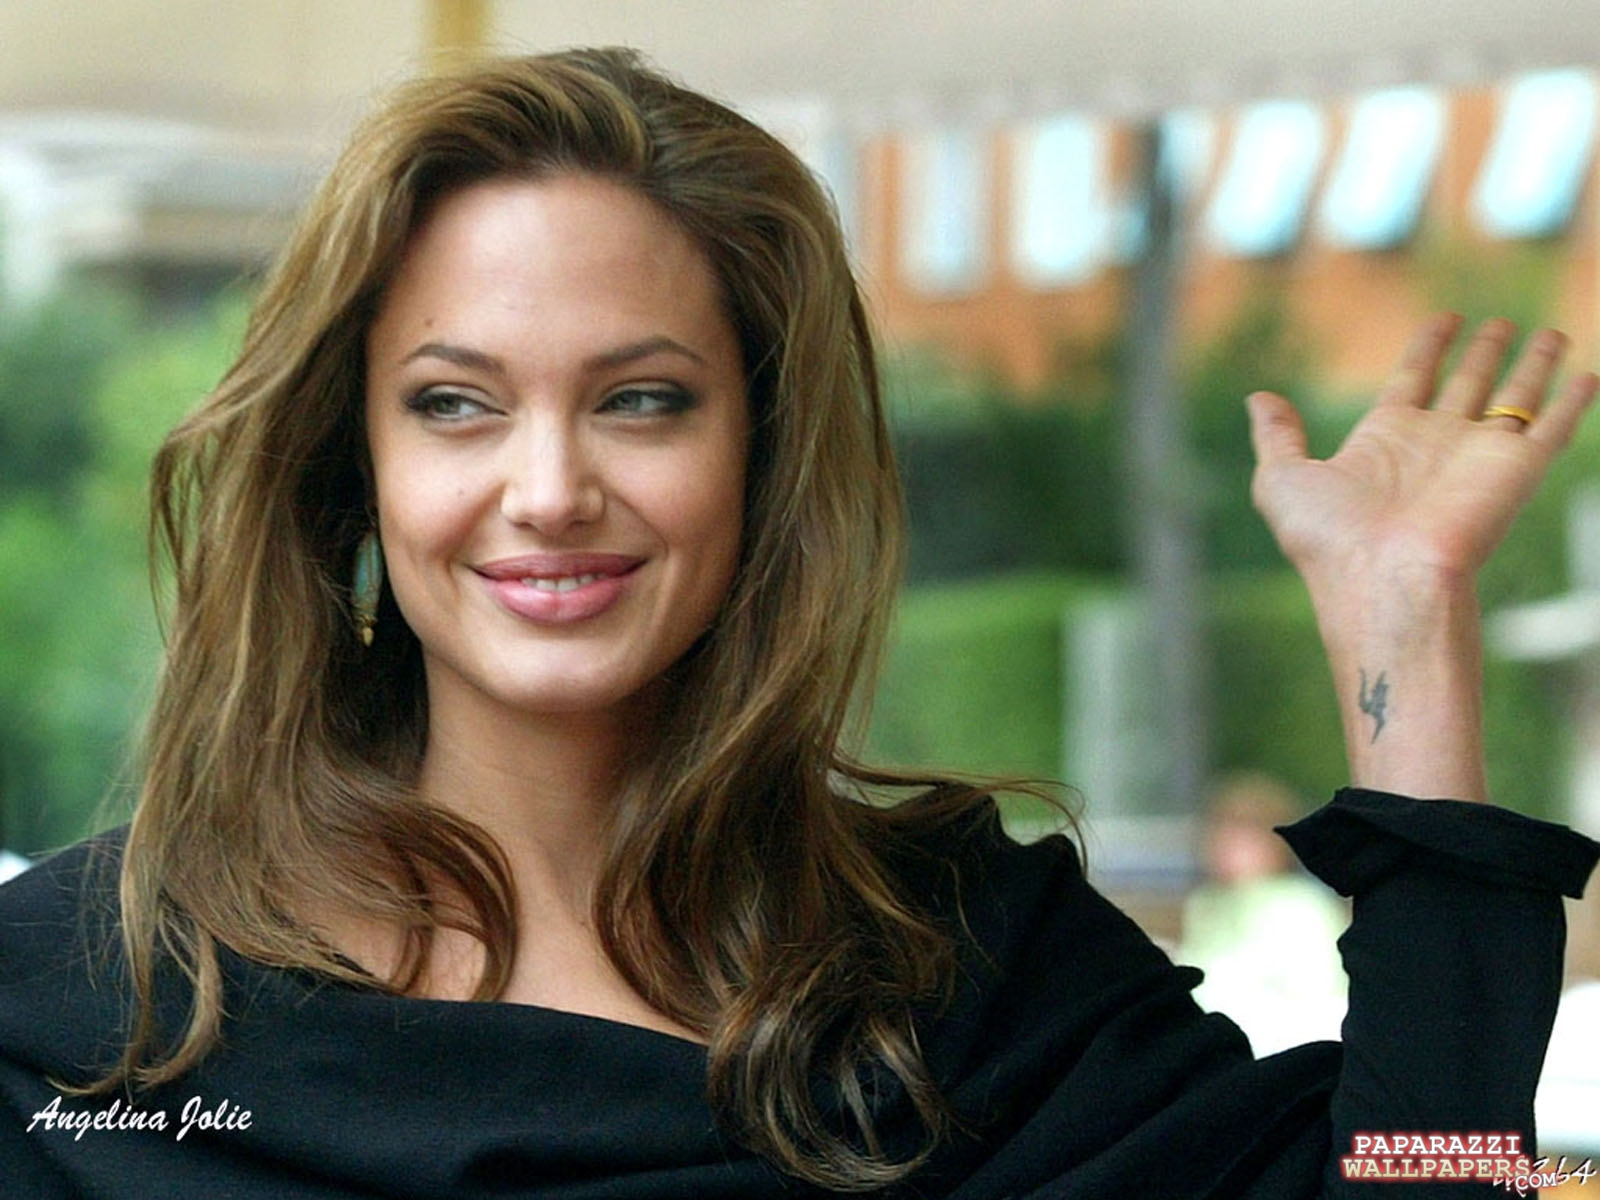 angelina jolie wallpapers 011